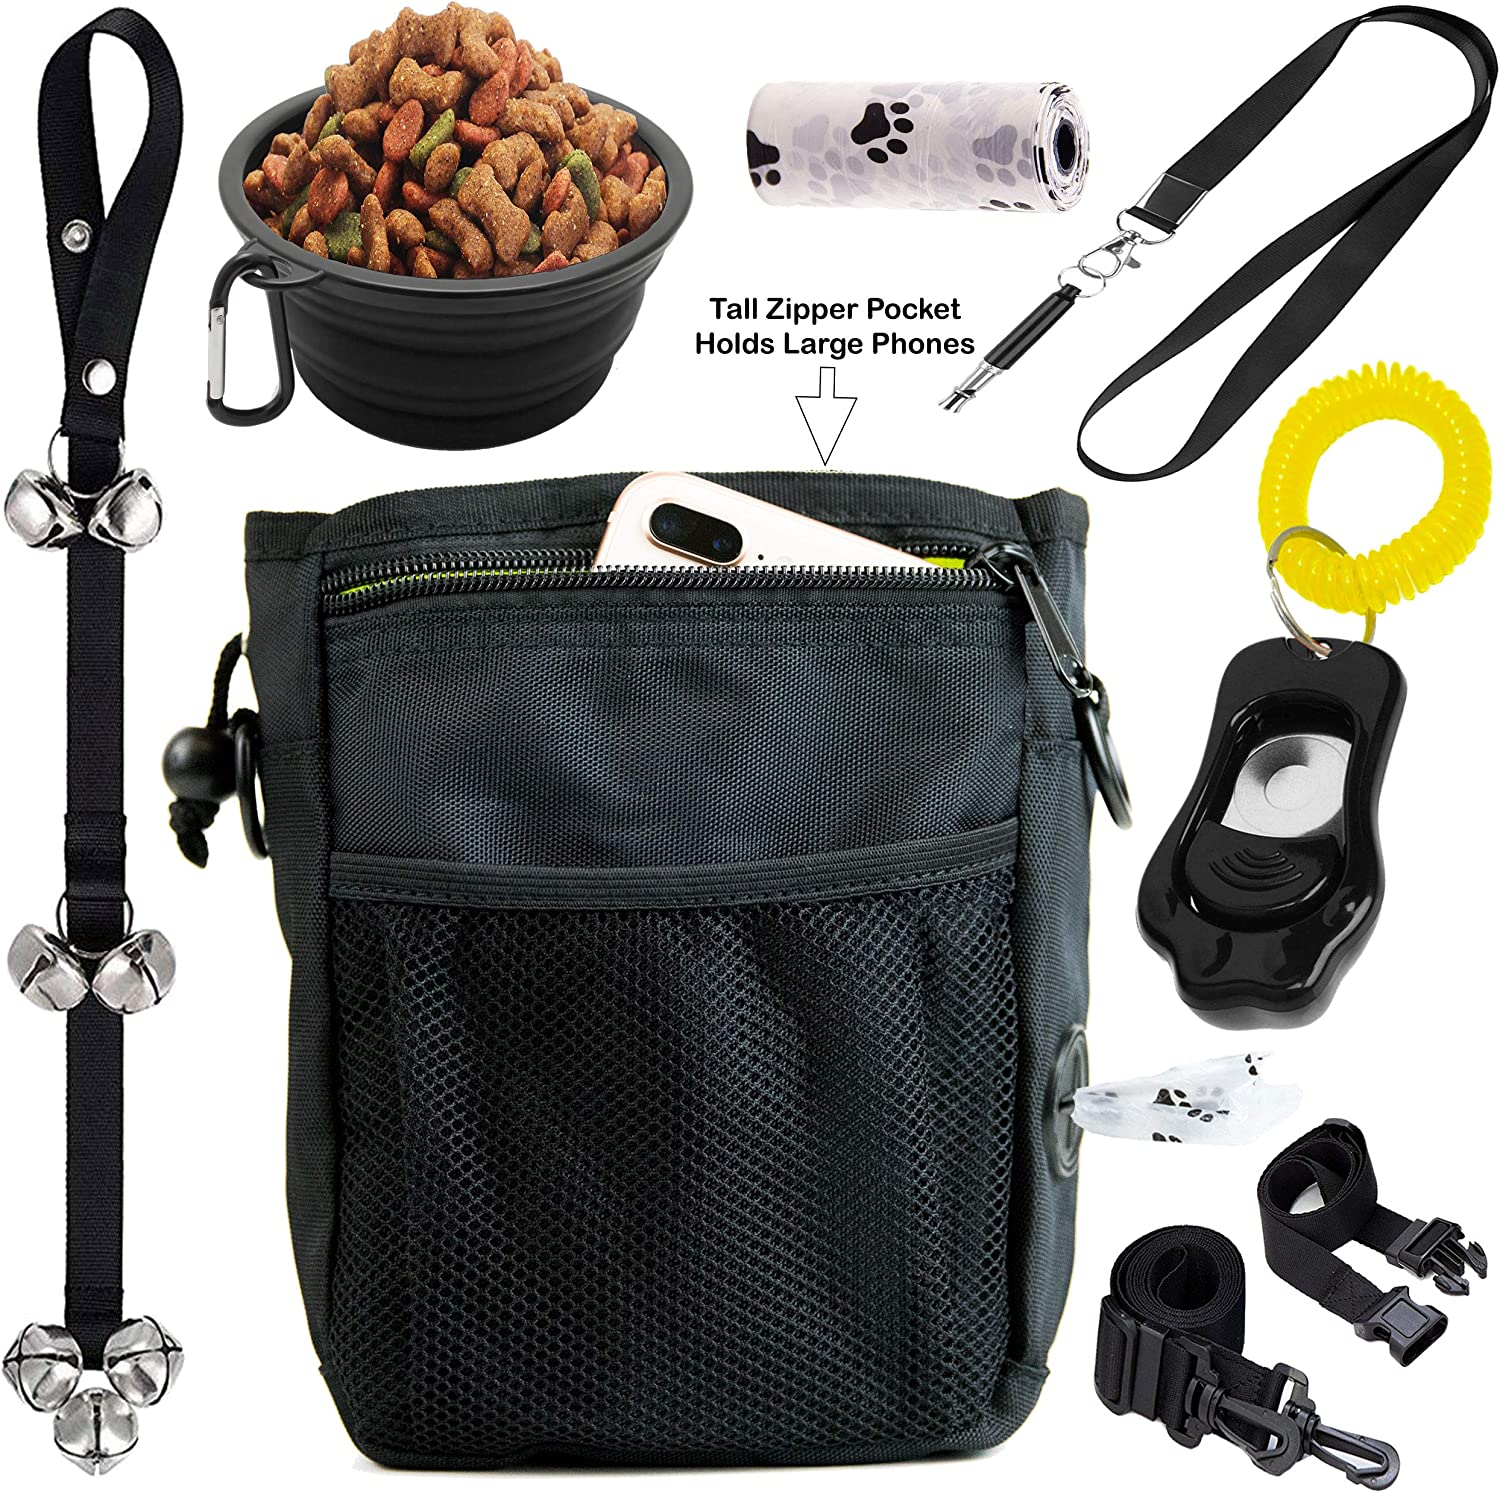 6 in 1 Puppy and Dog Training Essential Kit  Dog Treat Training Pouch, Bark Control Whistle, House Training Doorbells, Pet Clicker, Dog Bowl, and Poop Bag Ideal Gift for First Time Pet Owners